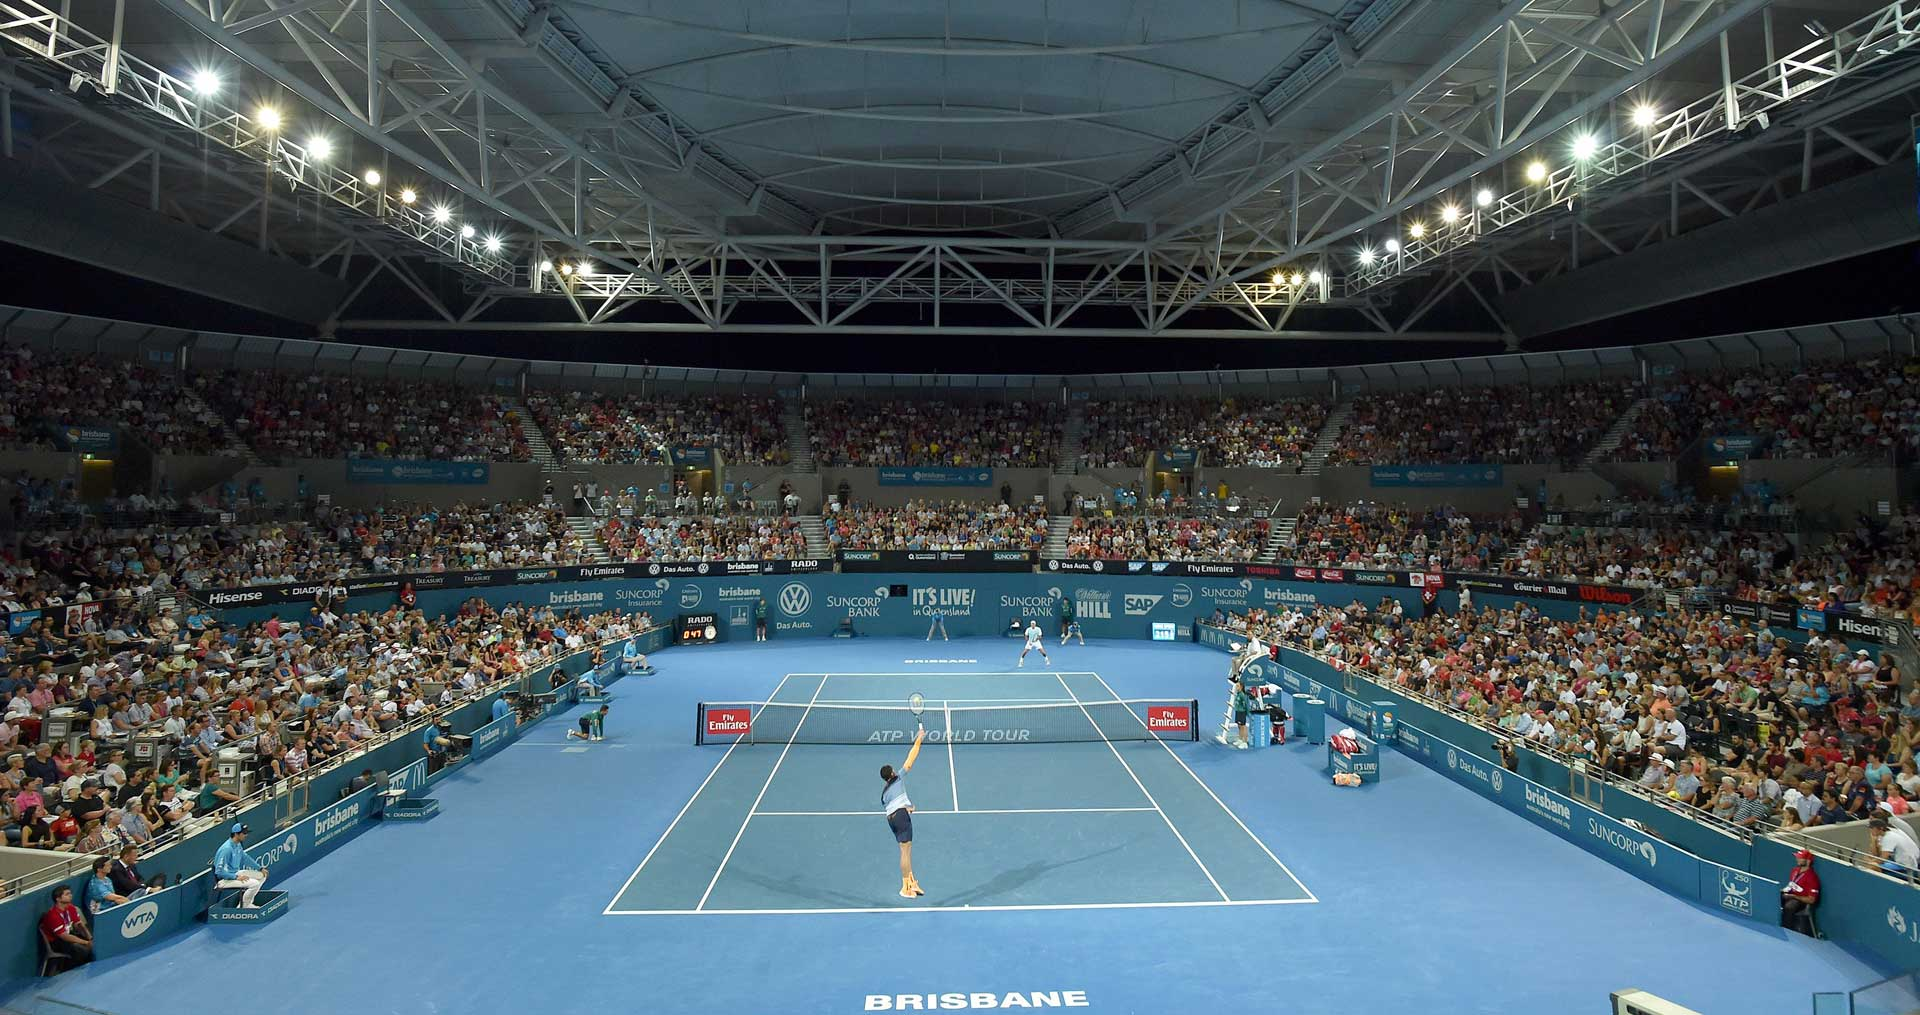 how to get to queensland tennis centre